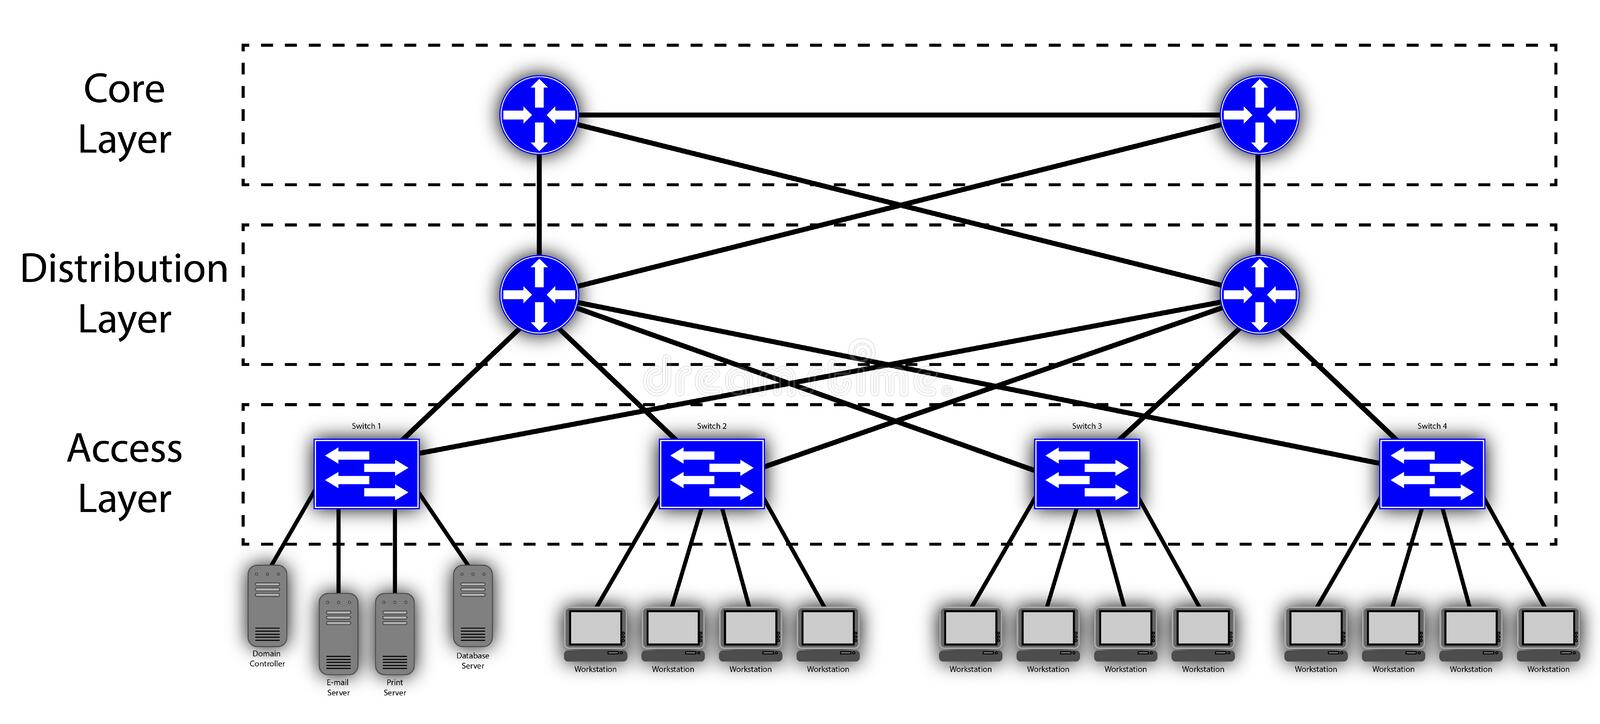 3 Layer Hierarchical Mesh Network Diagram. An diagram of a 3 Layer Hierarchical Mesh Network Diagram stock illustration